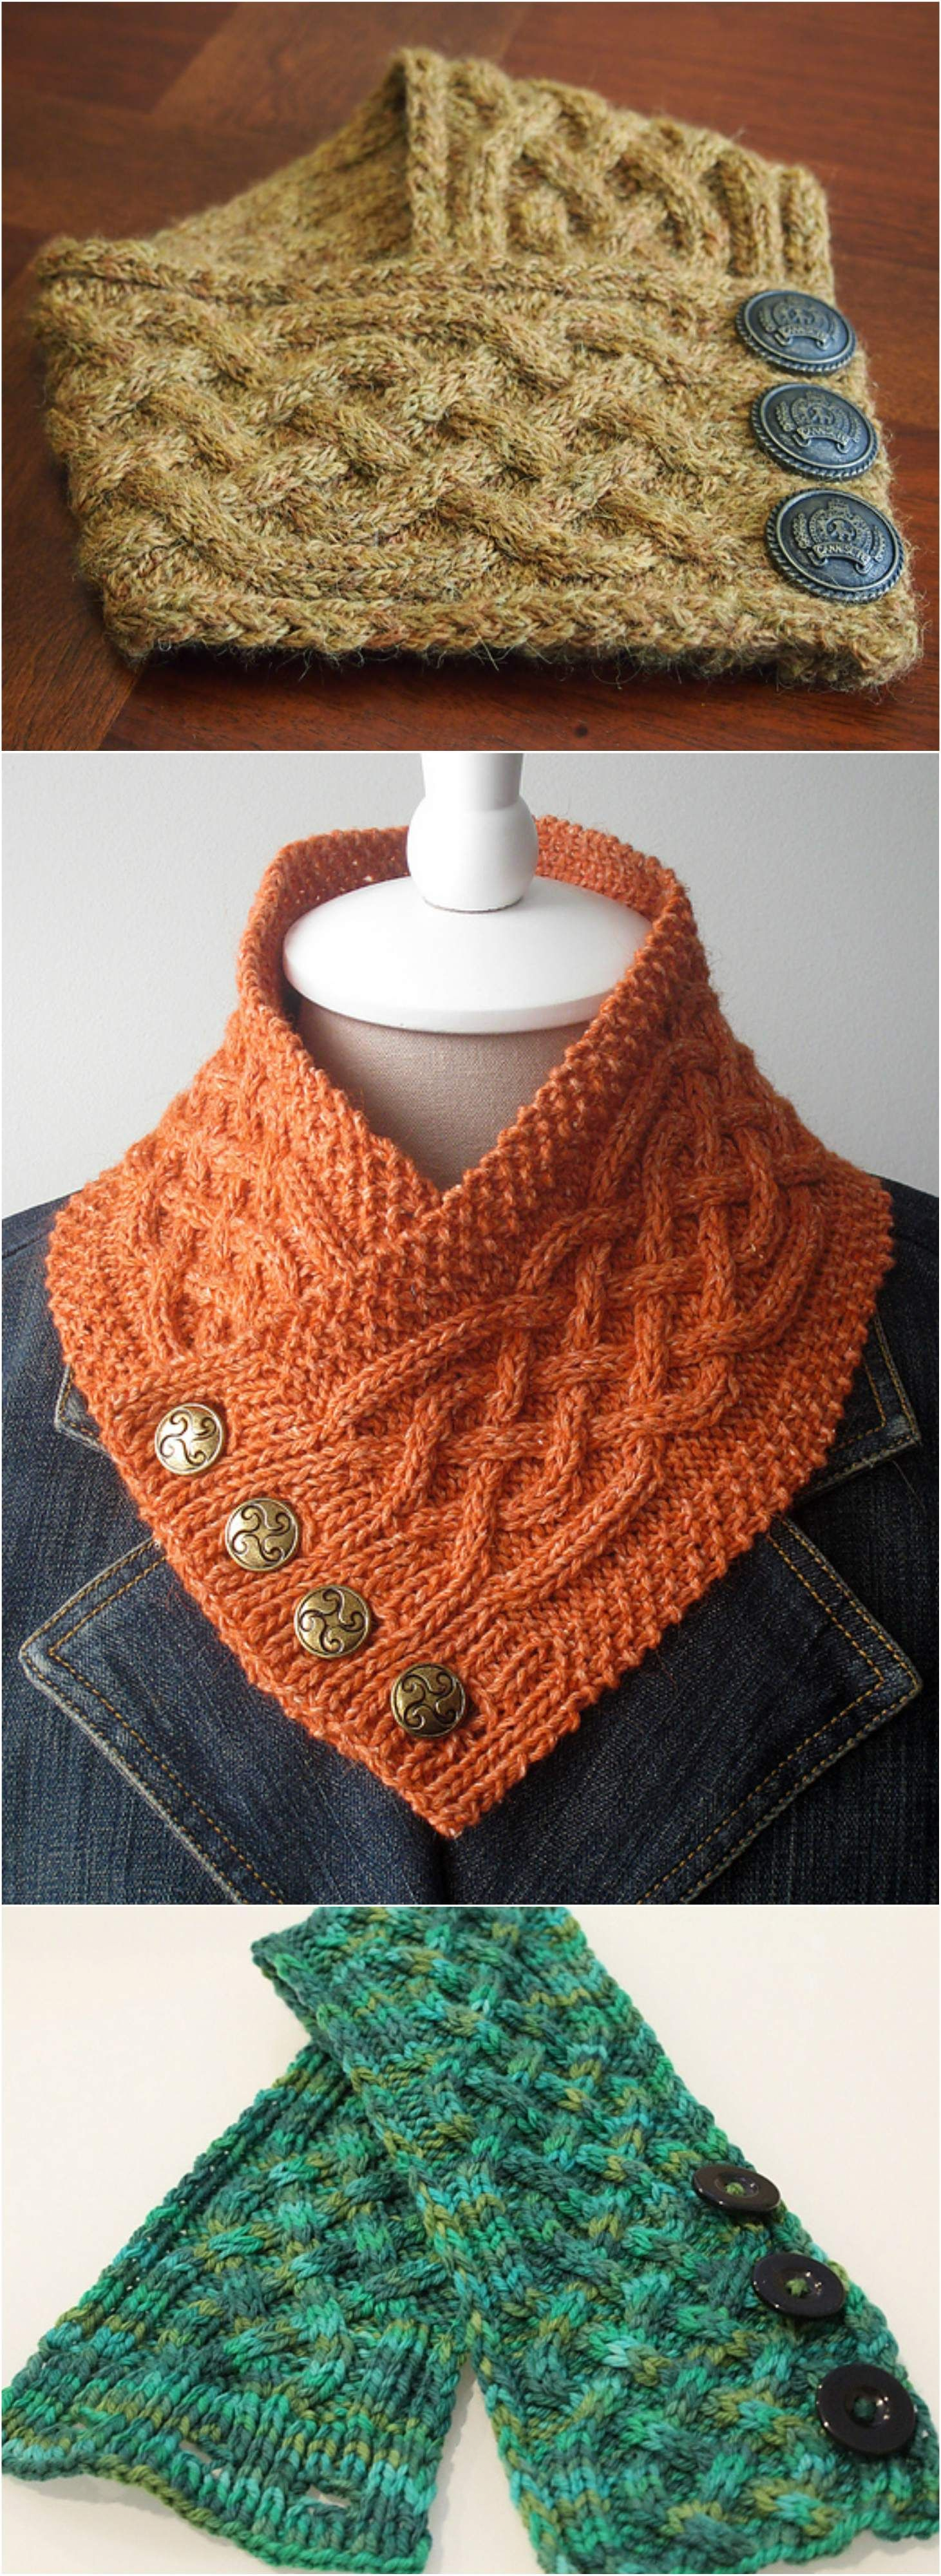 Knit Celtic Cable Neckwarmer | Stricken, Schals und Tücher